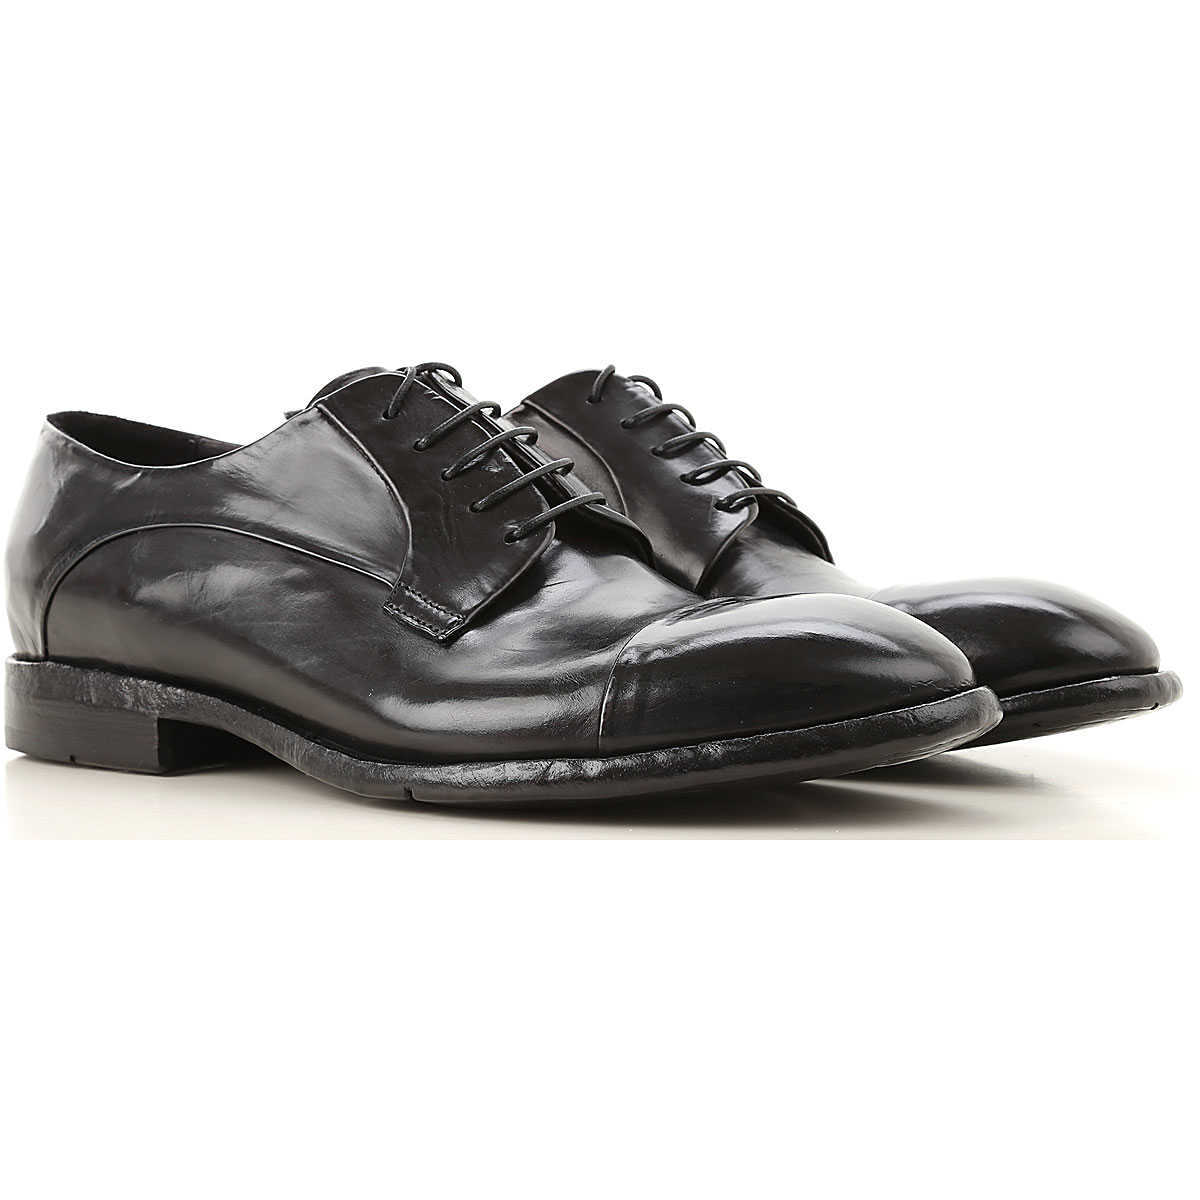 Lemargo Lace Up Shoes for Men Oxfords Derbies and Brogues On Sale - GOOFASH